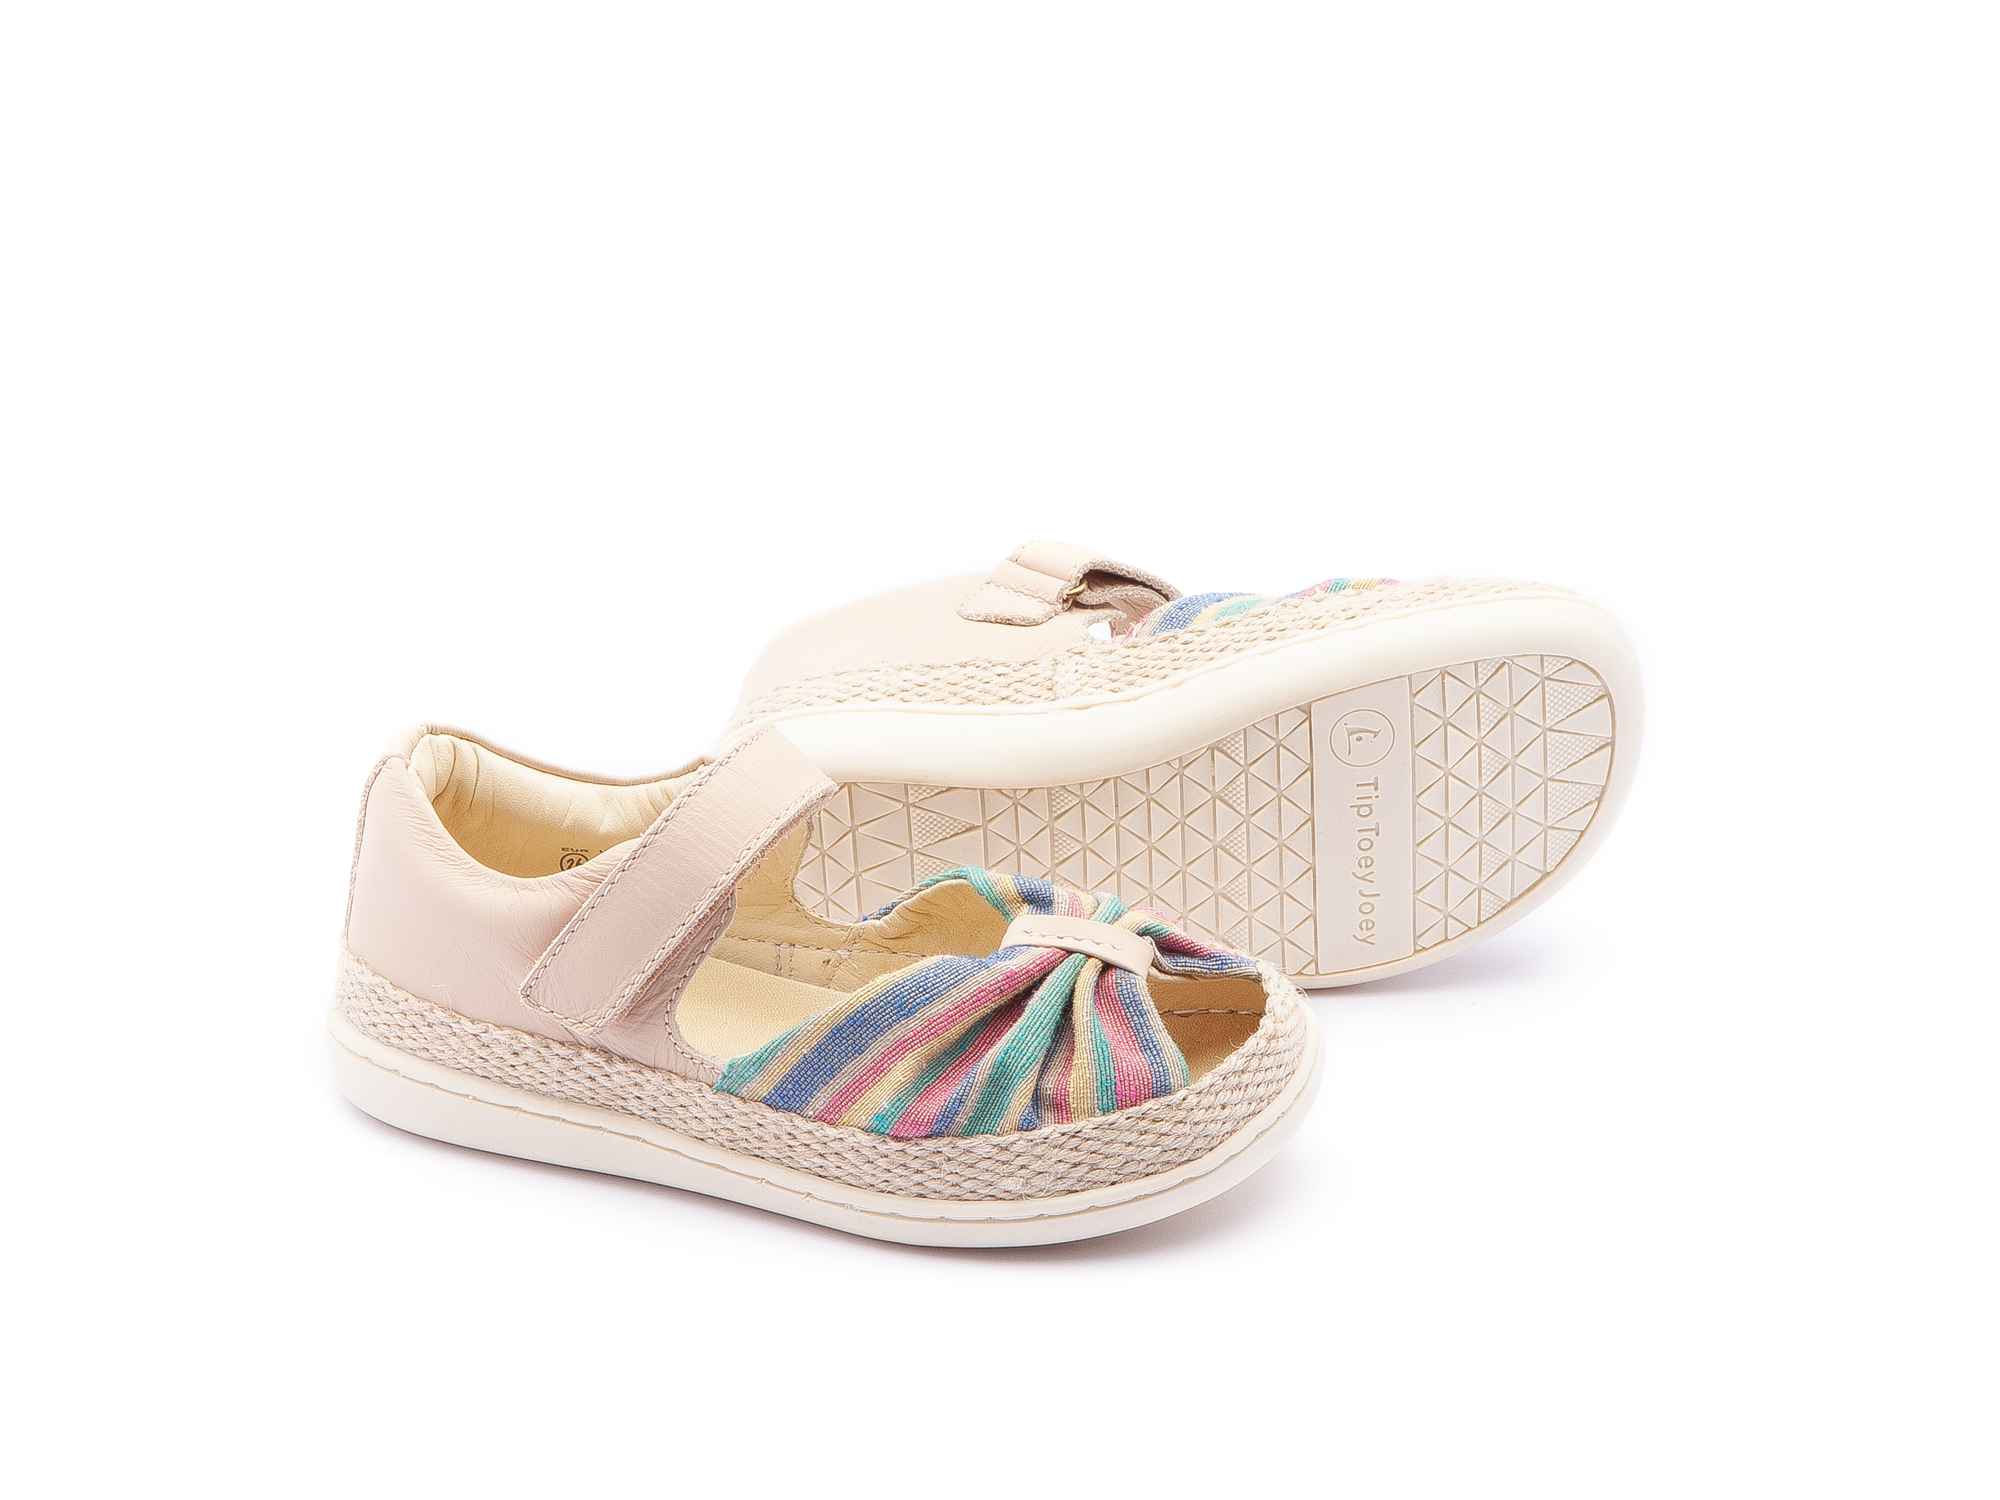 Sandália Little Coast Rainbow Canvas/ Yogurt Toddler 2 à 4 anos - 2